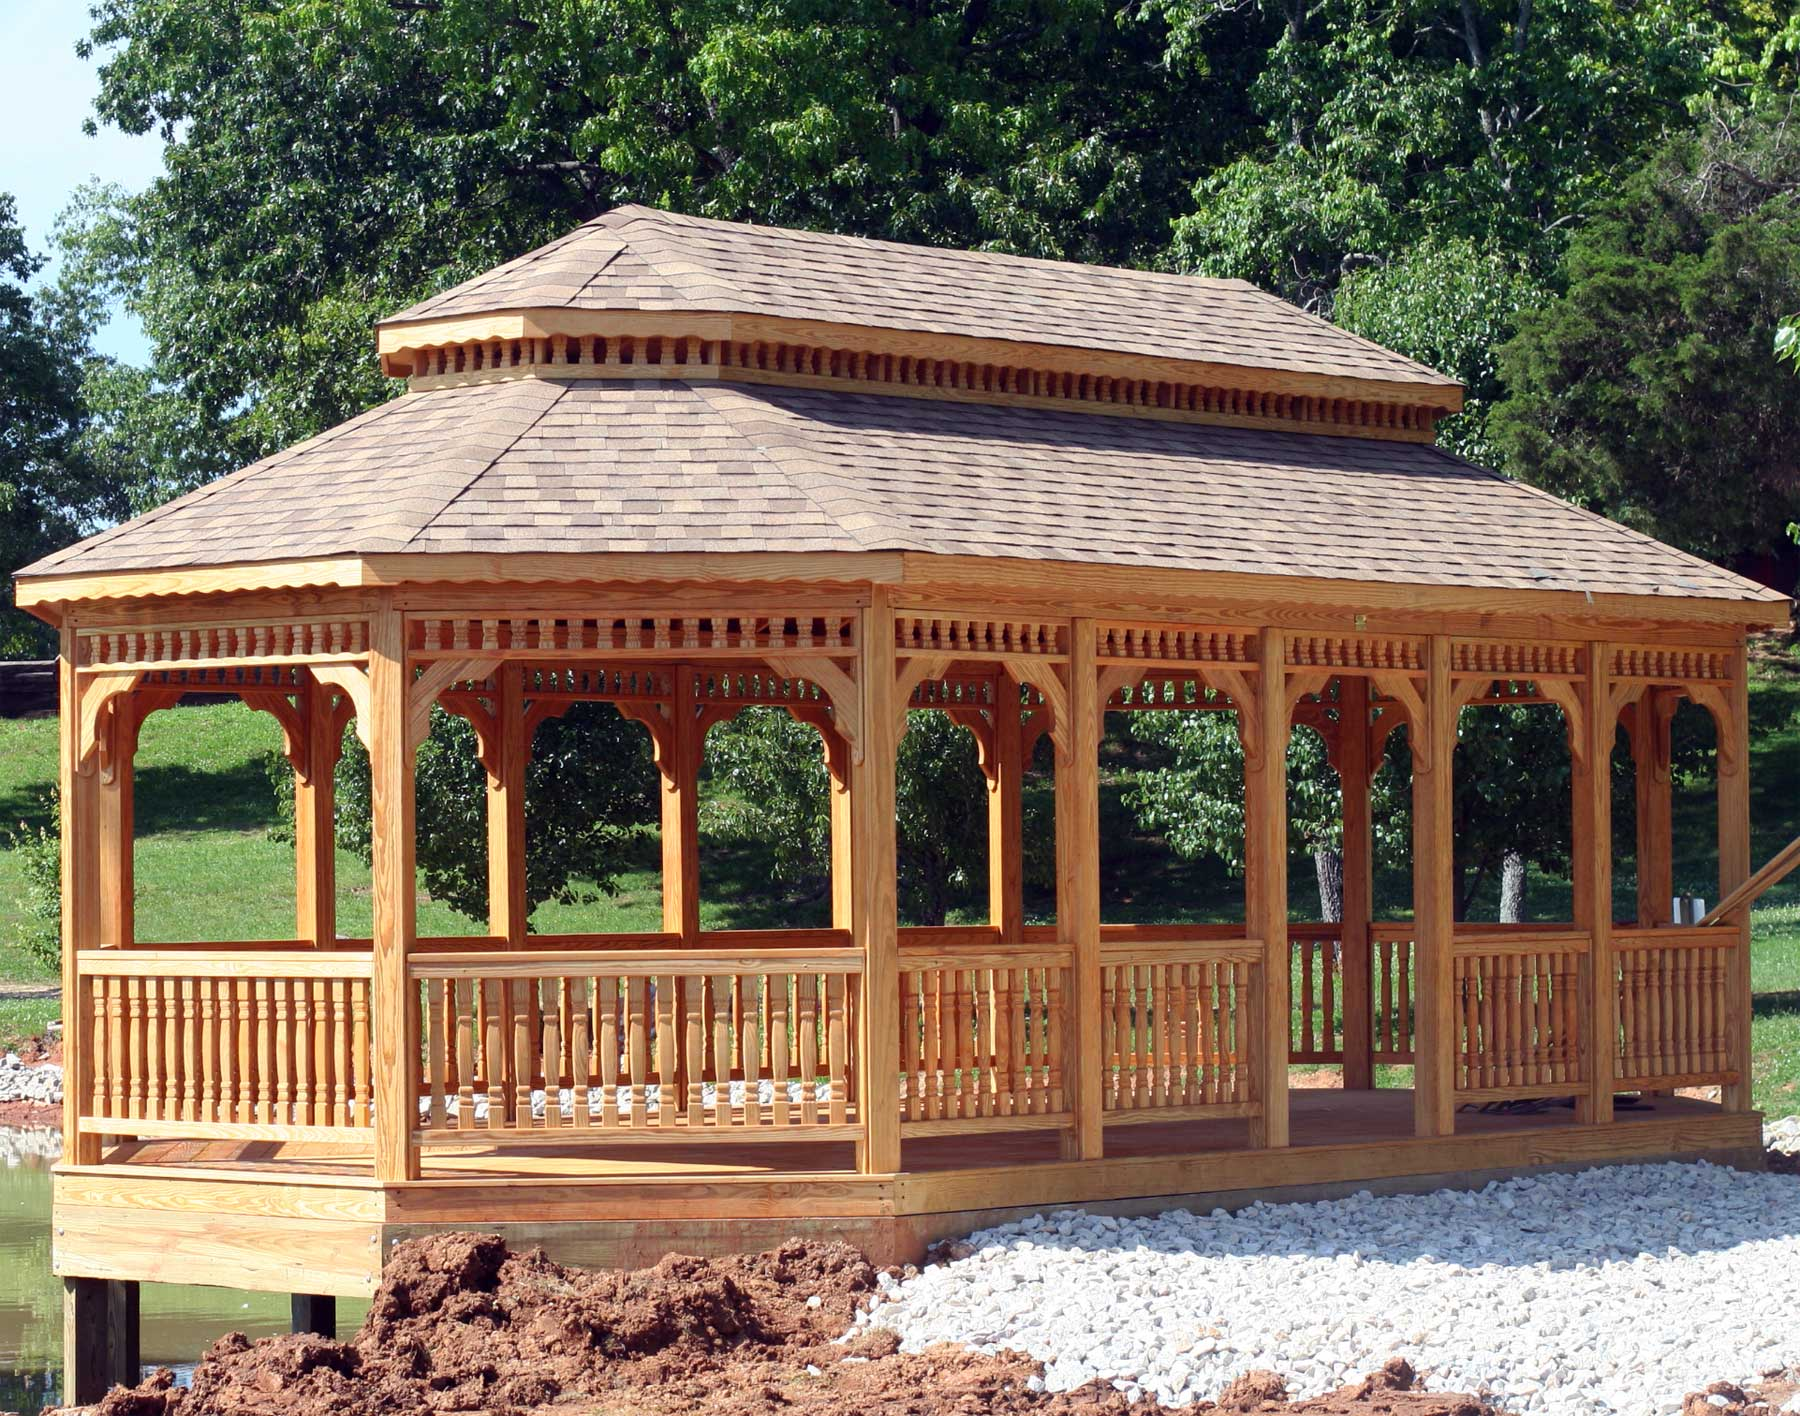 Treated pine double roof 8 sided oval gazebos gazebos by for Gazebo house plans